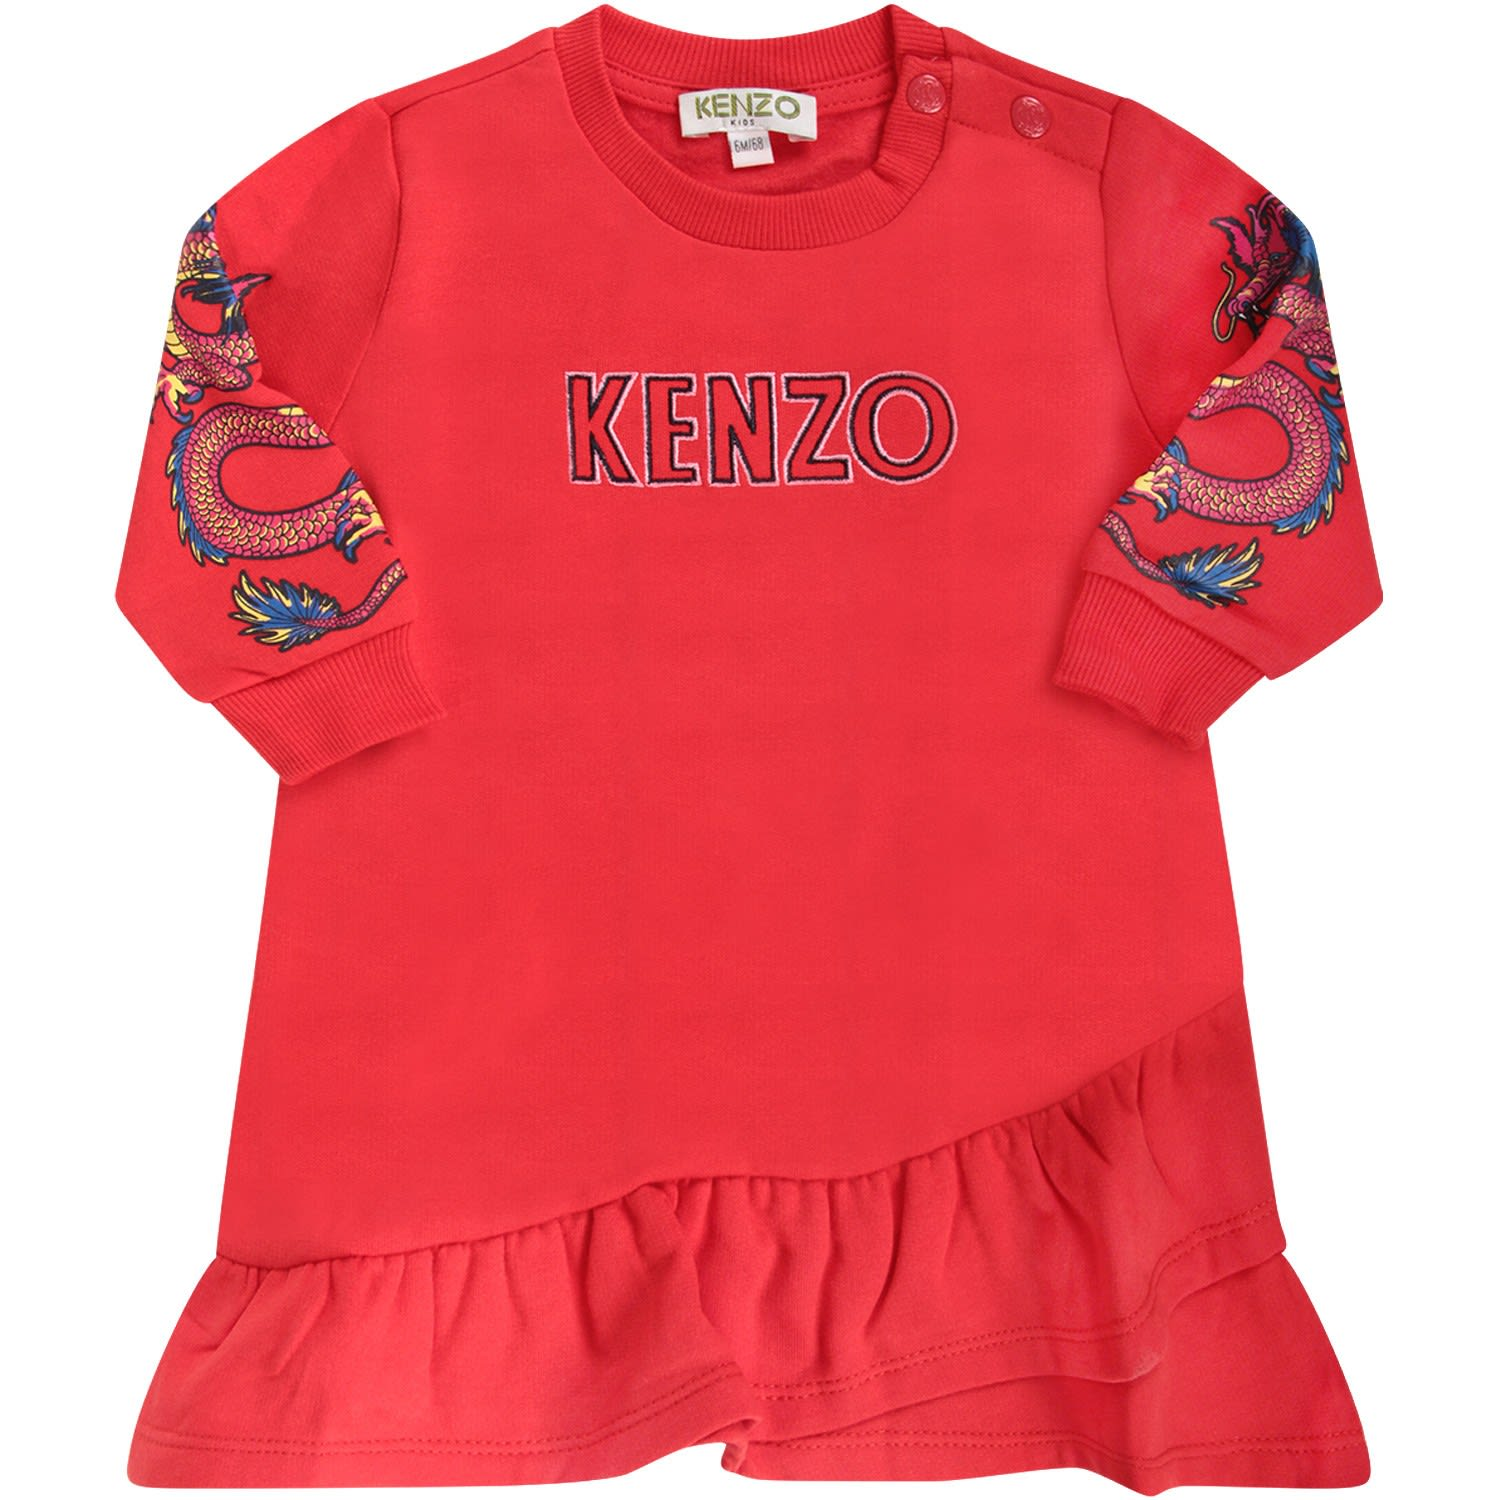 Kenzo Kids Red Babygirl Dress With Logo And Japanese Dragons